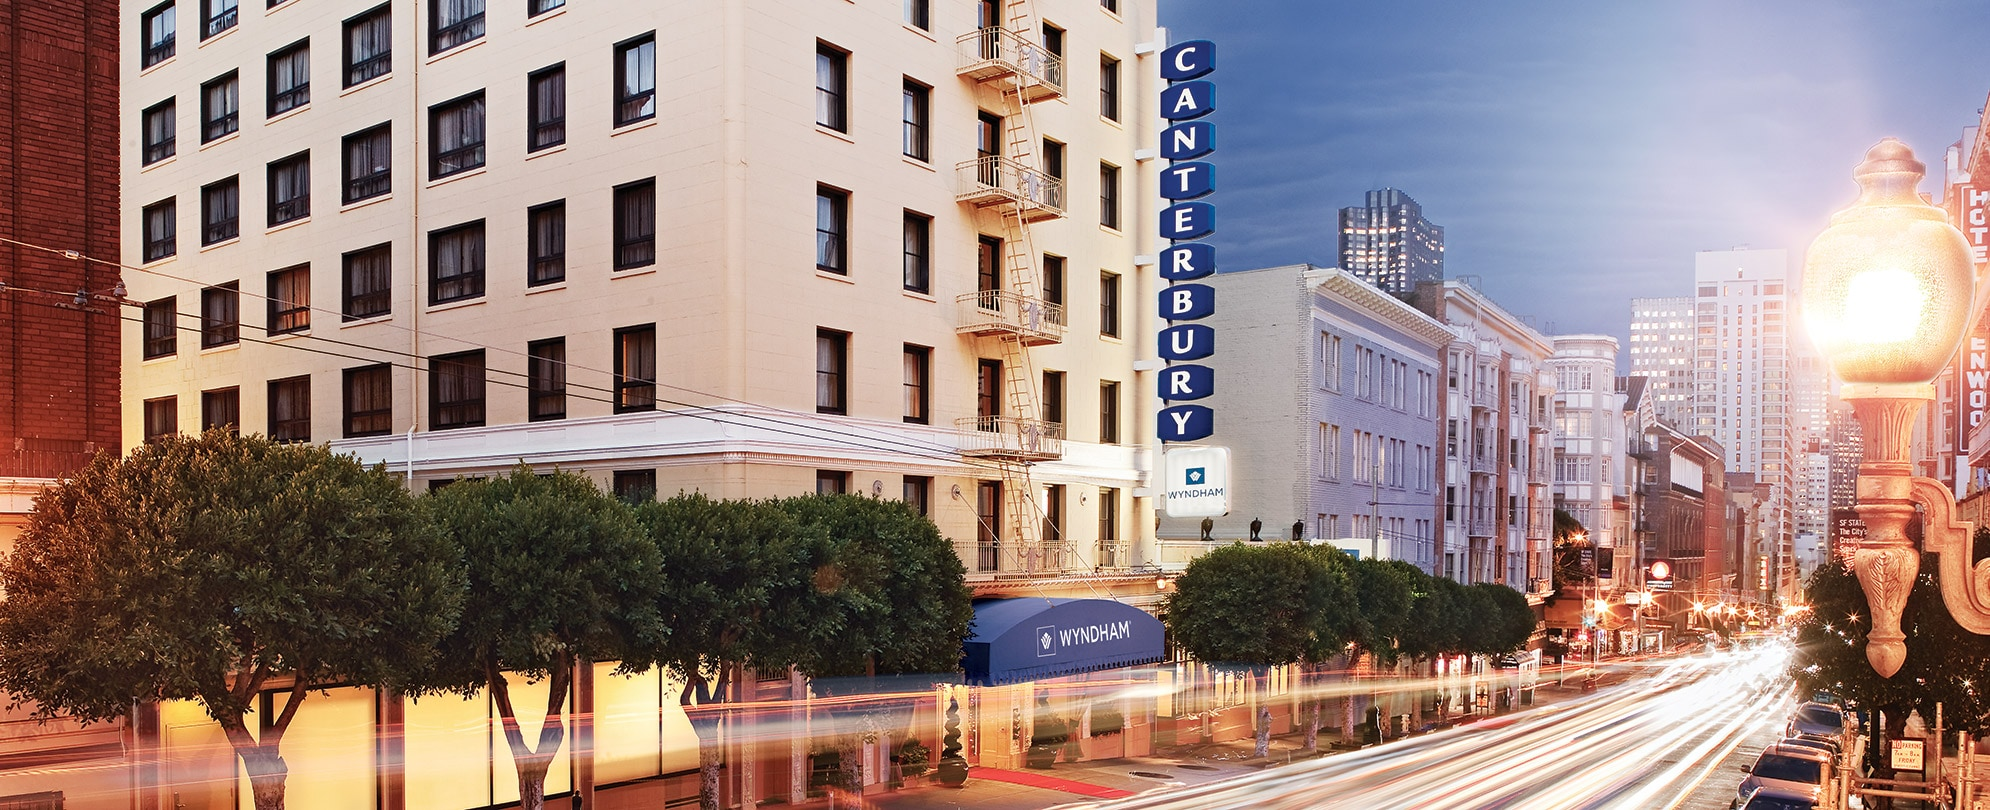 Wyndham Canterbury San Francisco